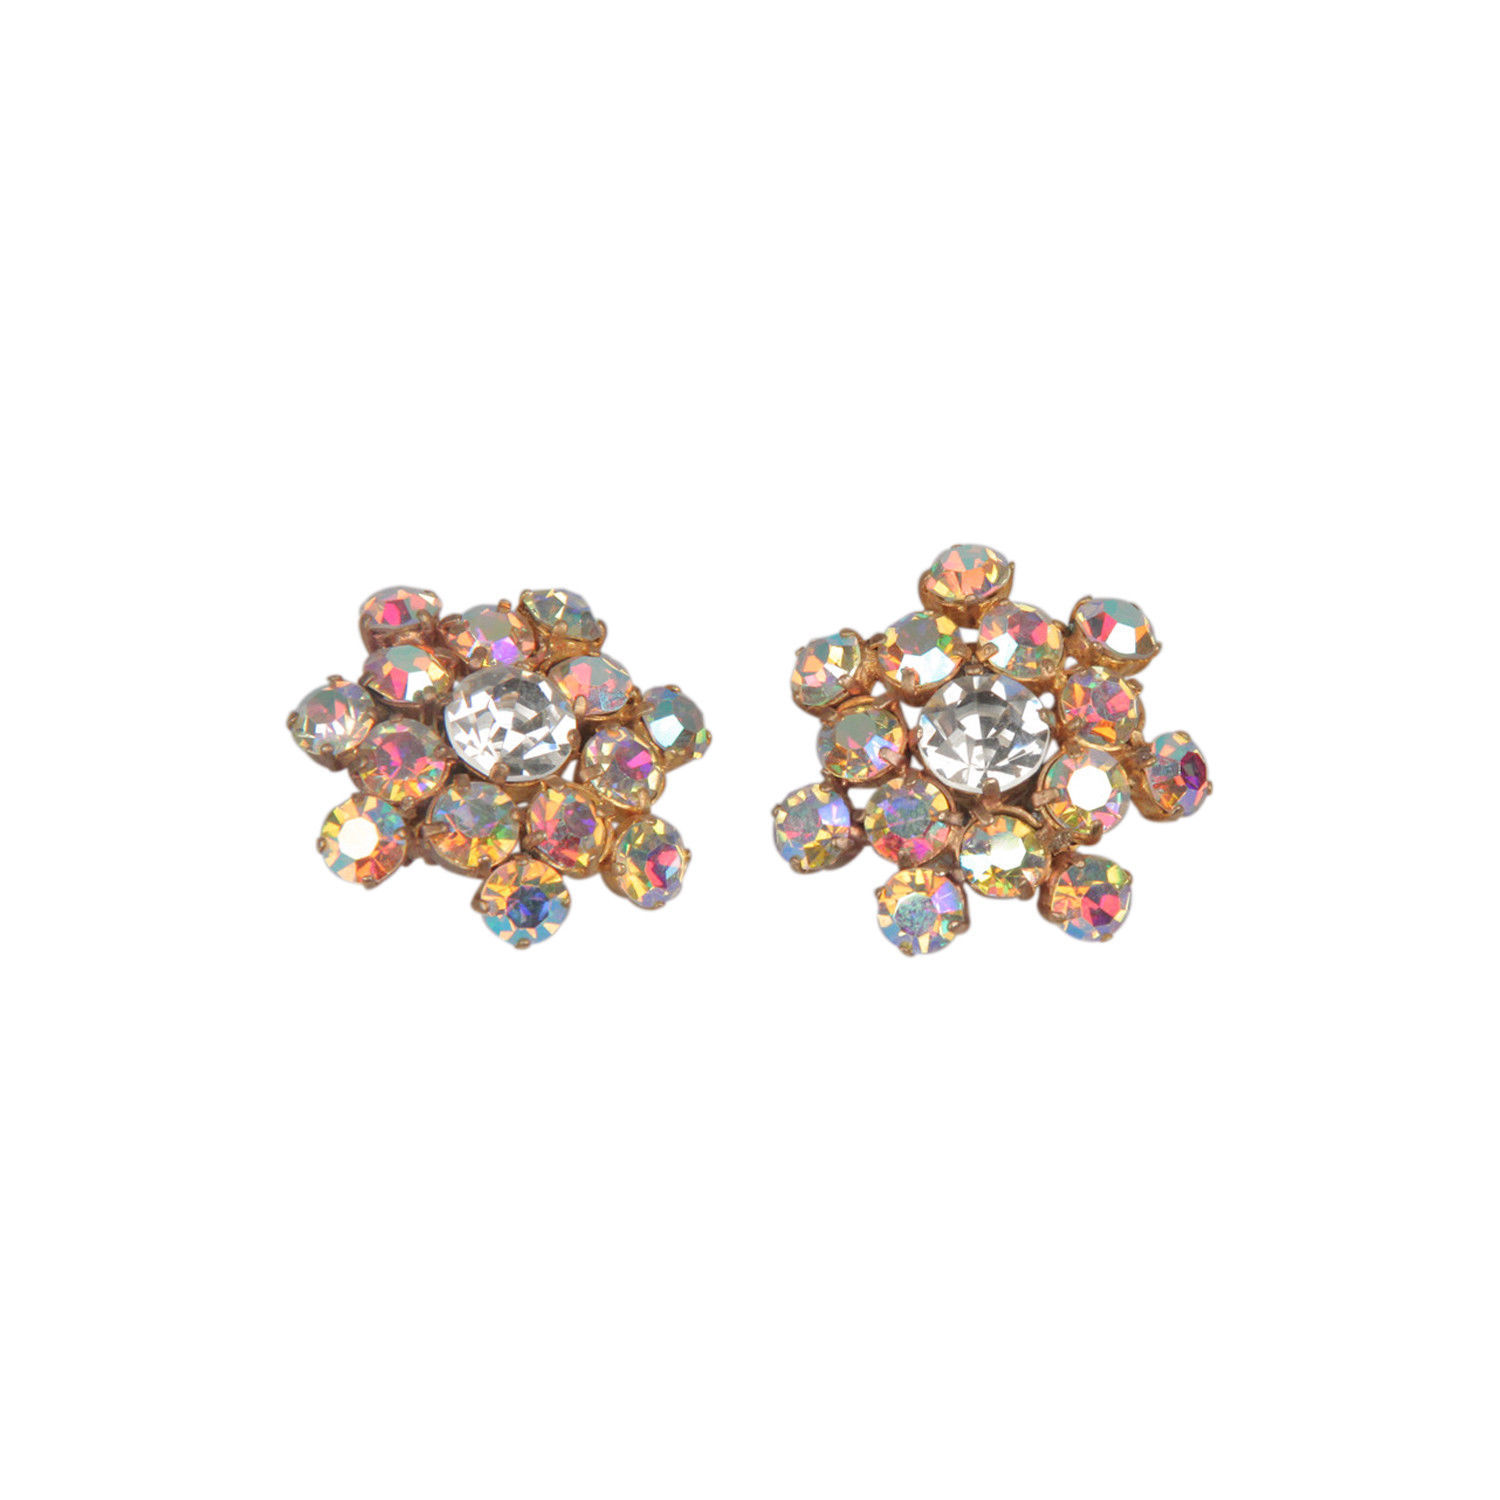 73495eaadec408 S l1600. S l1600. Previous. Authentic CHANEL Vintage Gold Metal Rhinestones Clip  On EARRINGS · Authentic CHANEL Vintage Gold ...